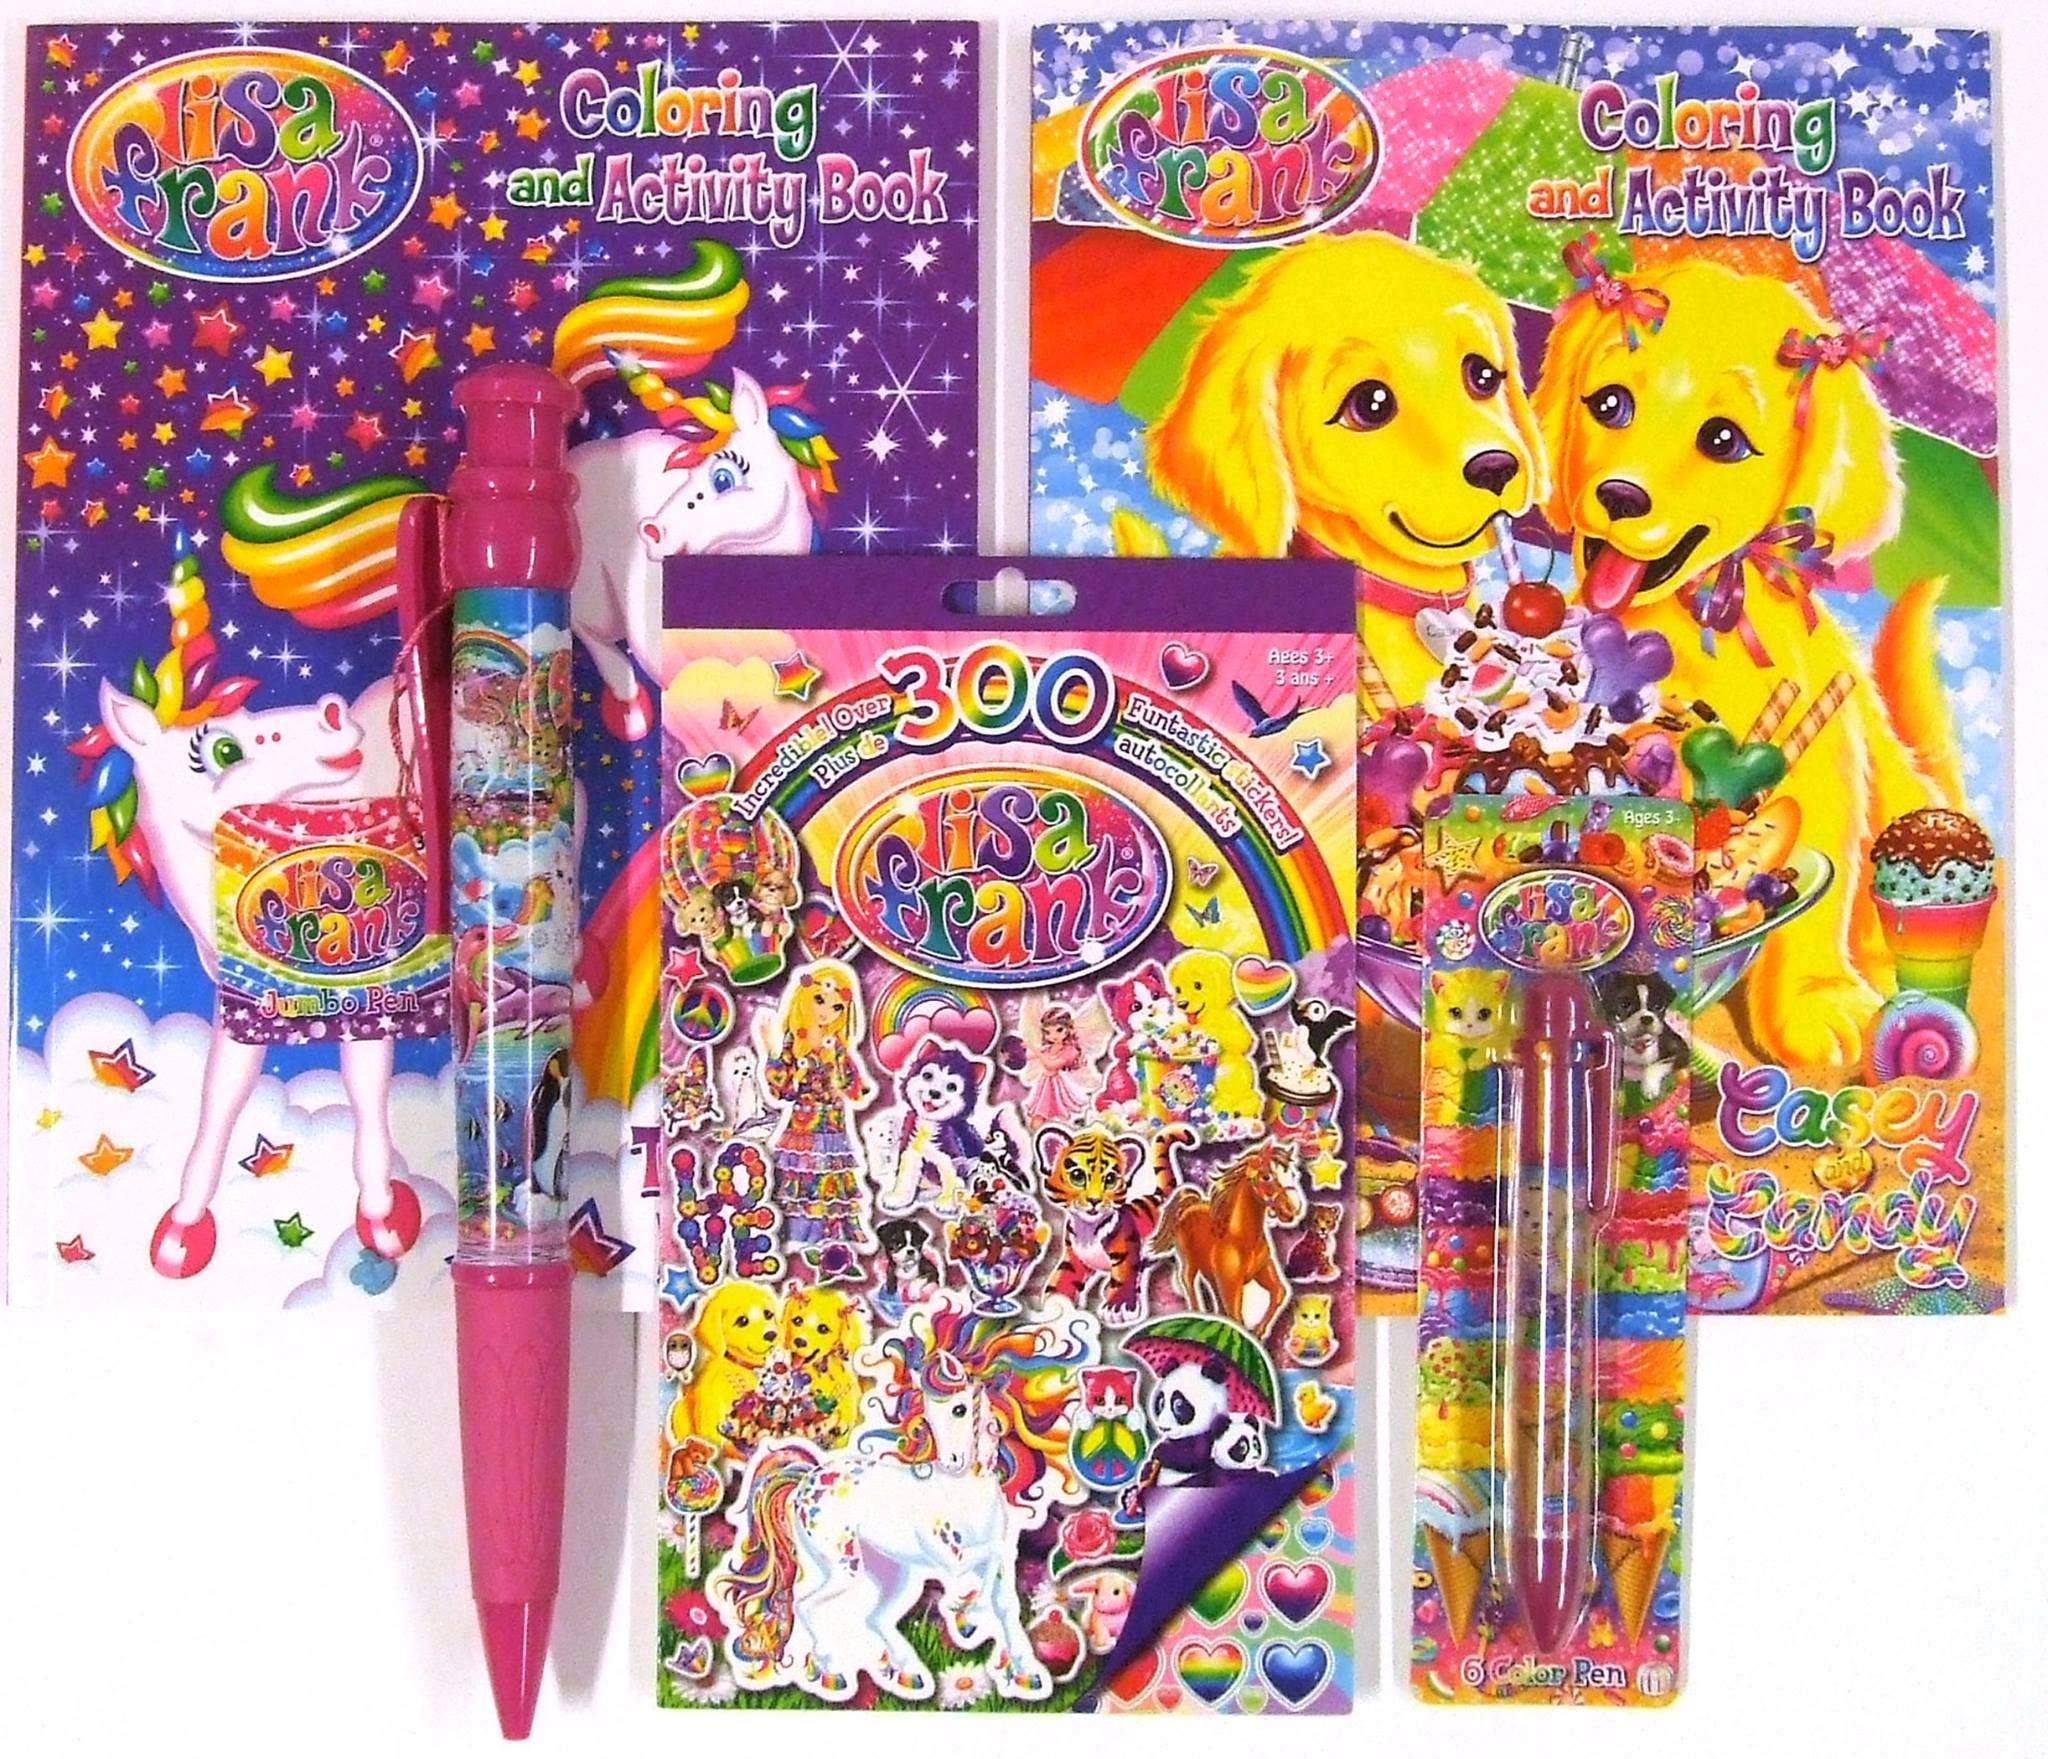 Hurry Available Now At Target One Spot Lisa Frank Coloring Books Lisa Frank Stickers Lisa Frank